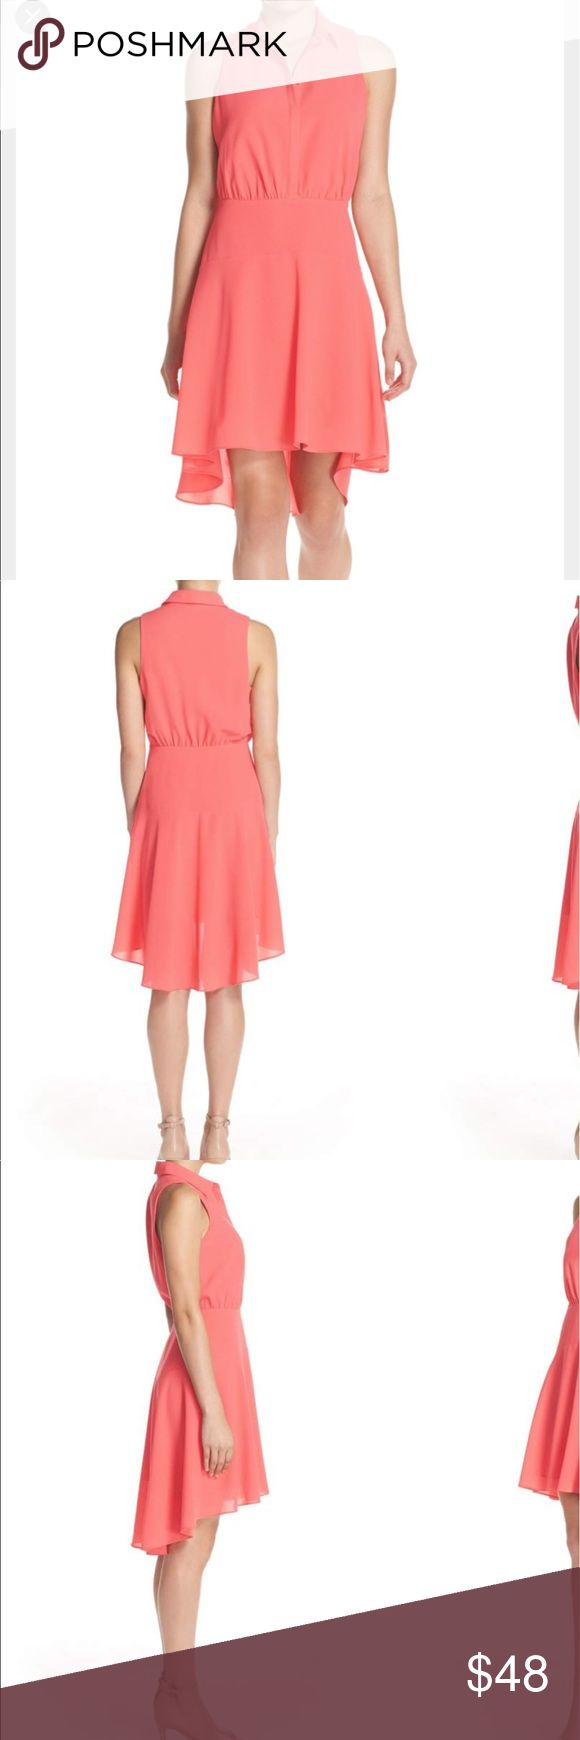 "Nordstrom's Alli&Jay High-Low 🍑 color 👗 medium First pictures are for modeling purposes, were taken from Nordstrom website, 😐No trades or modeling, no rips or stains, armpit to armpit is 18.5"",Waist is 15"".A flowy skirt with a dramatic high/low hem adds trend-savvy appeal to a fit-and-flare shirtdress that serves as the perfect blend of sophisticated and playful. 36 1/2"" front length; 41 1/2"" back length (size Medium). Side zip closure; front button closure. Spread collar. Sleeveless…"